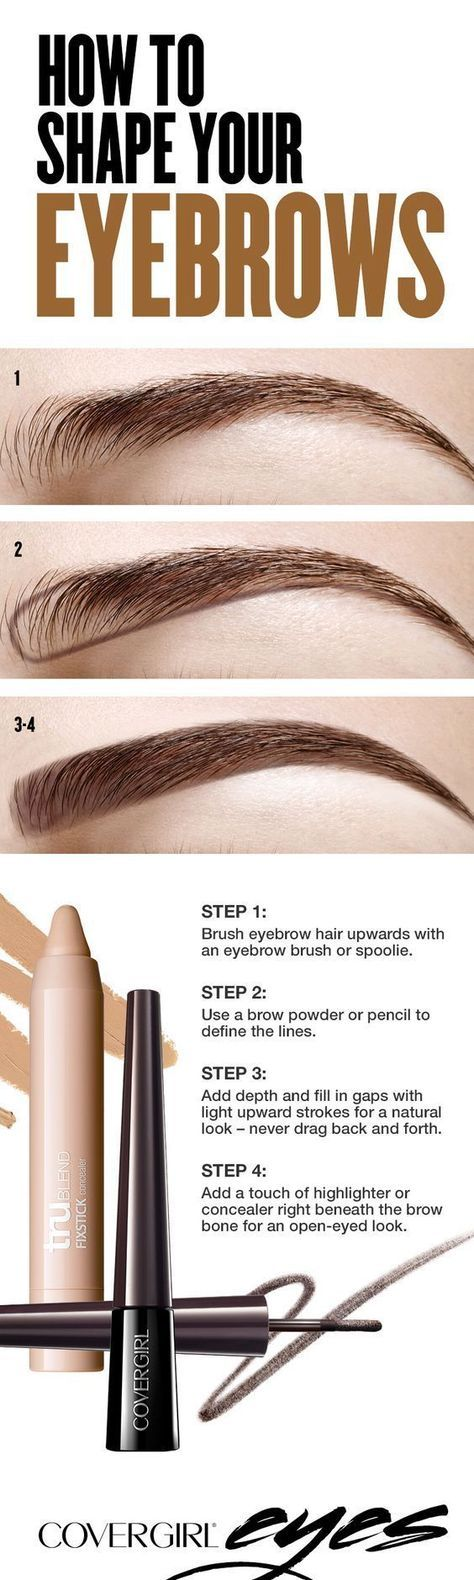 Makeup Revolution: 15 of the Most Popular Makeup Tips on Pinterest